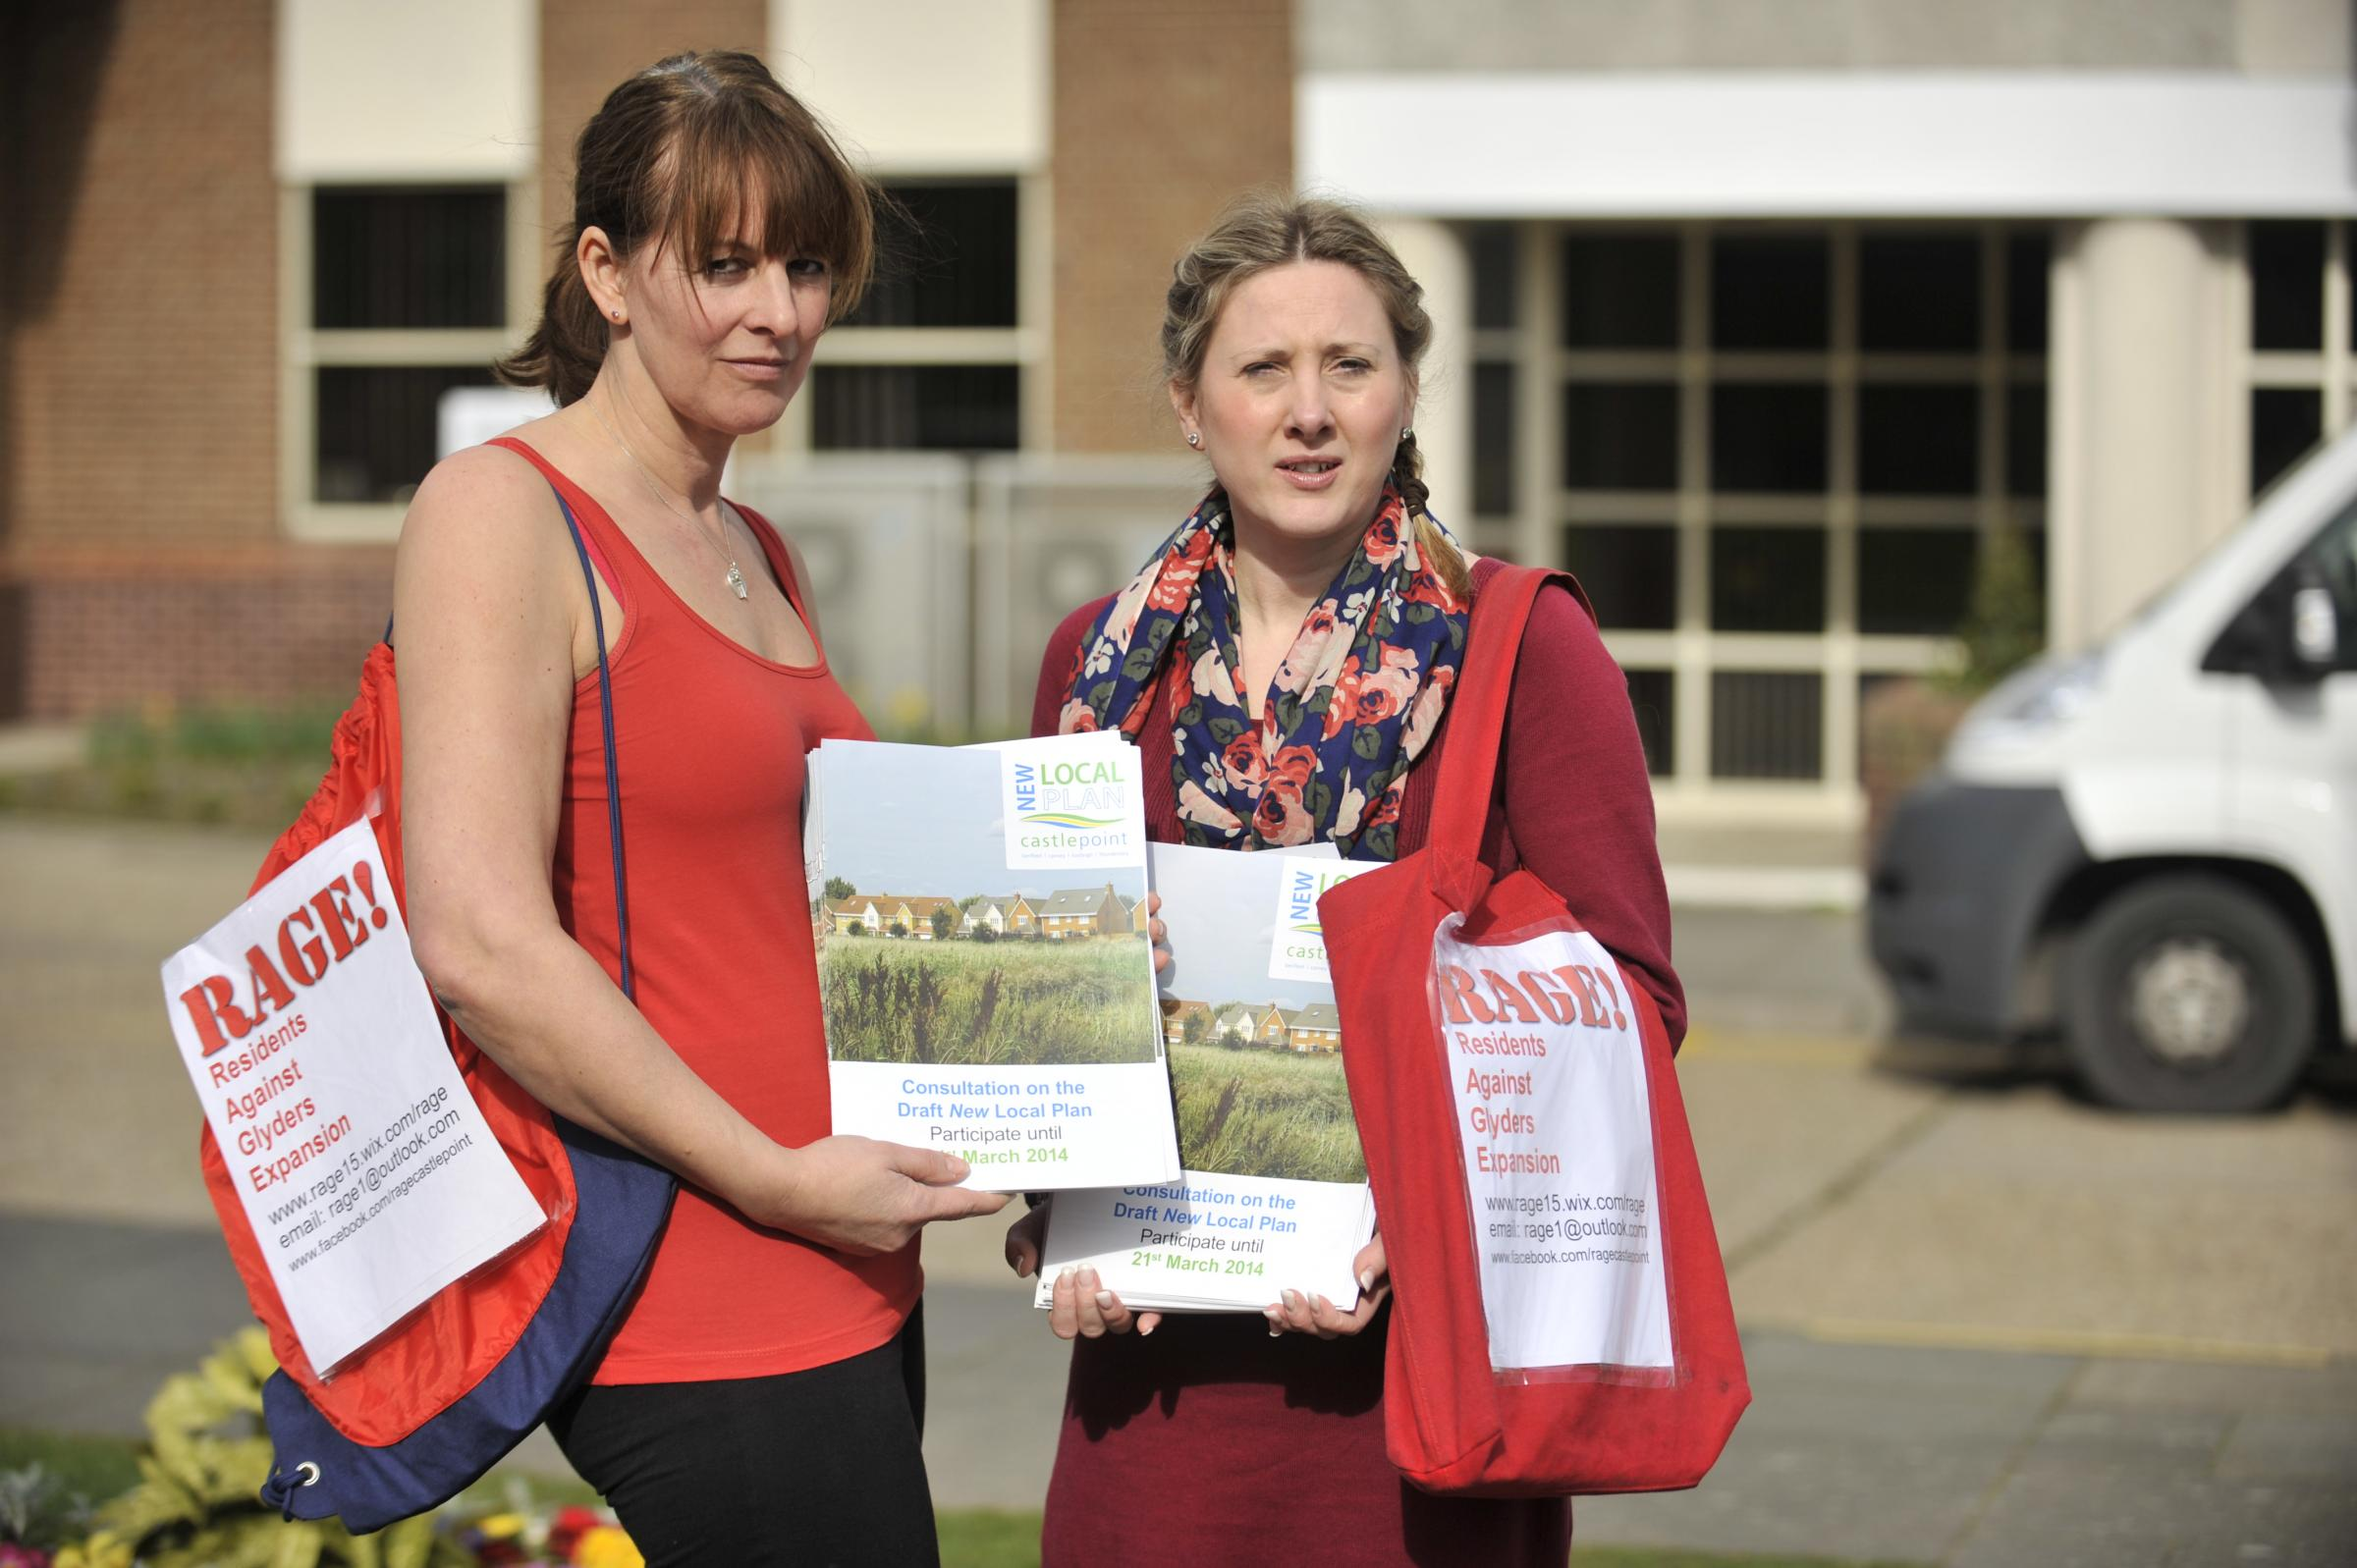 Do it yourself – Karen Robinson, left, and Jo Hannah pick up leaflets at the council offices